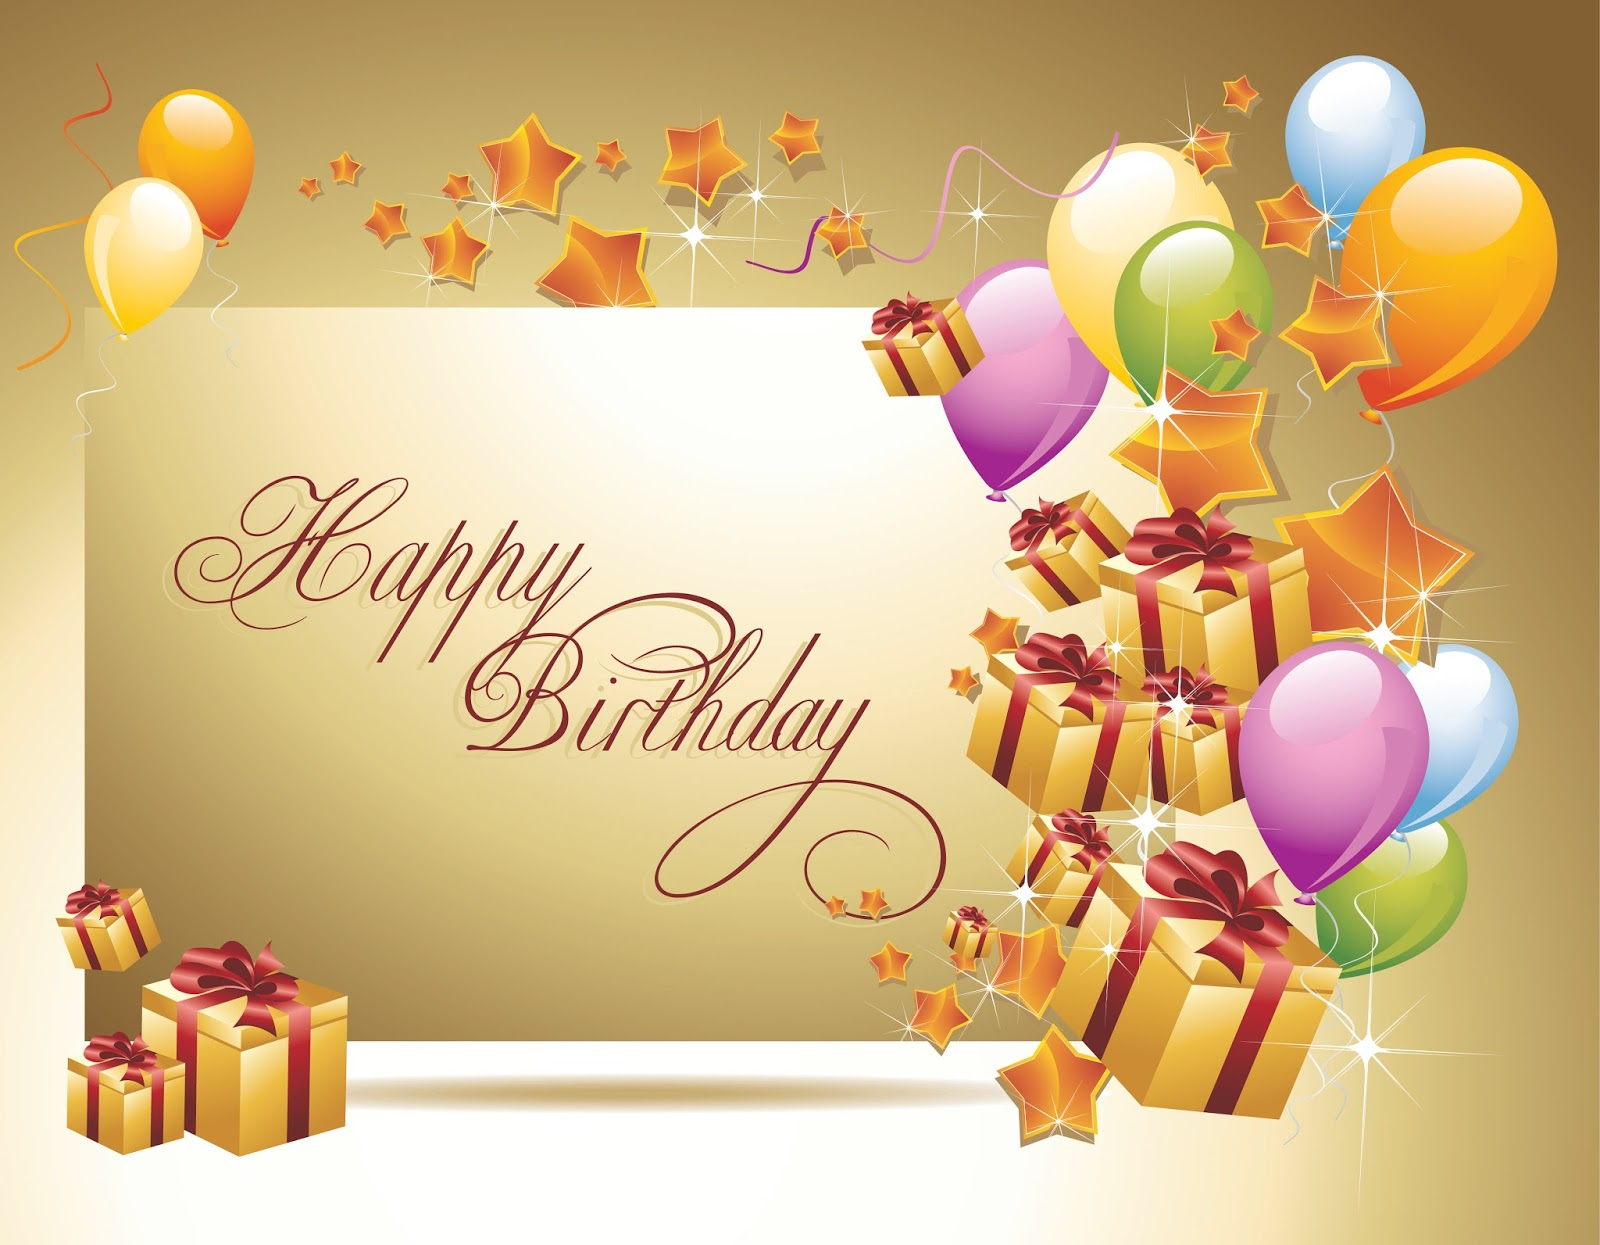 50 Birthday Wishes And Messages With Images Quotes Good Happy Birthday Wishes To